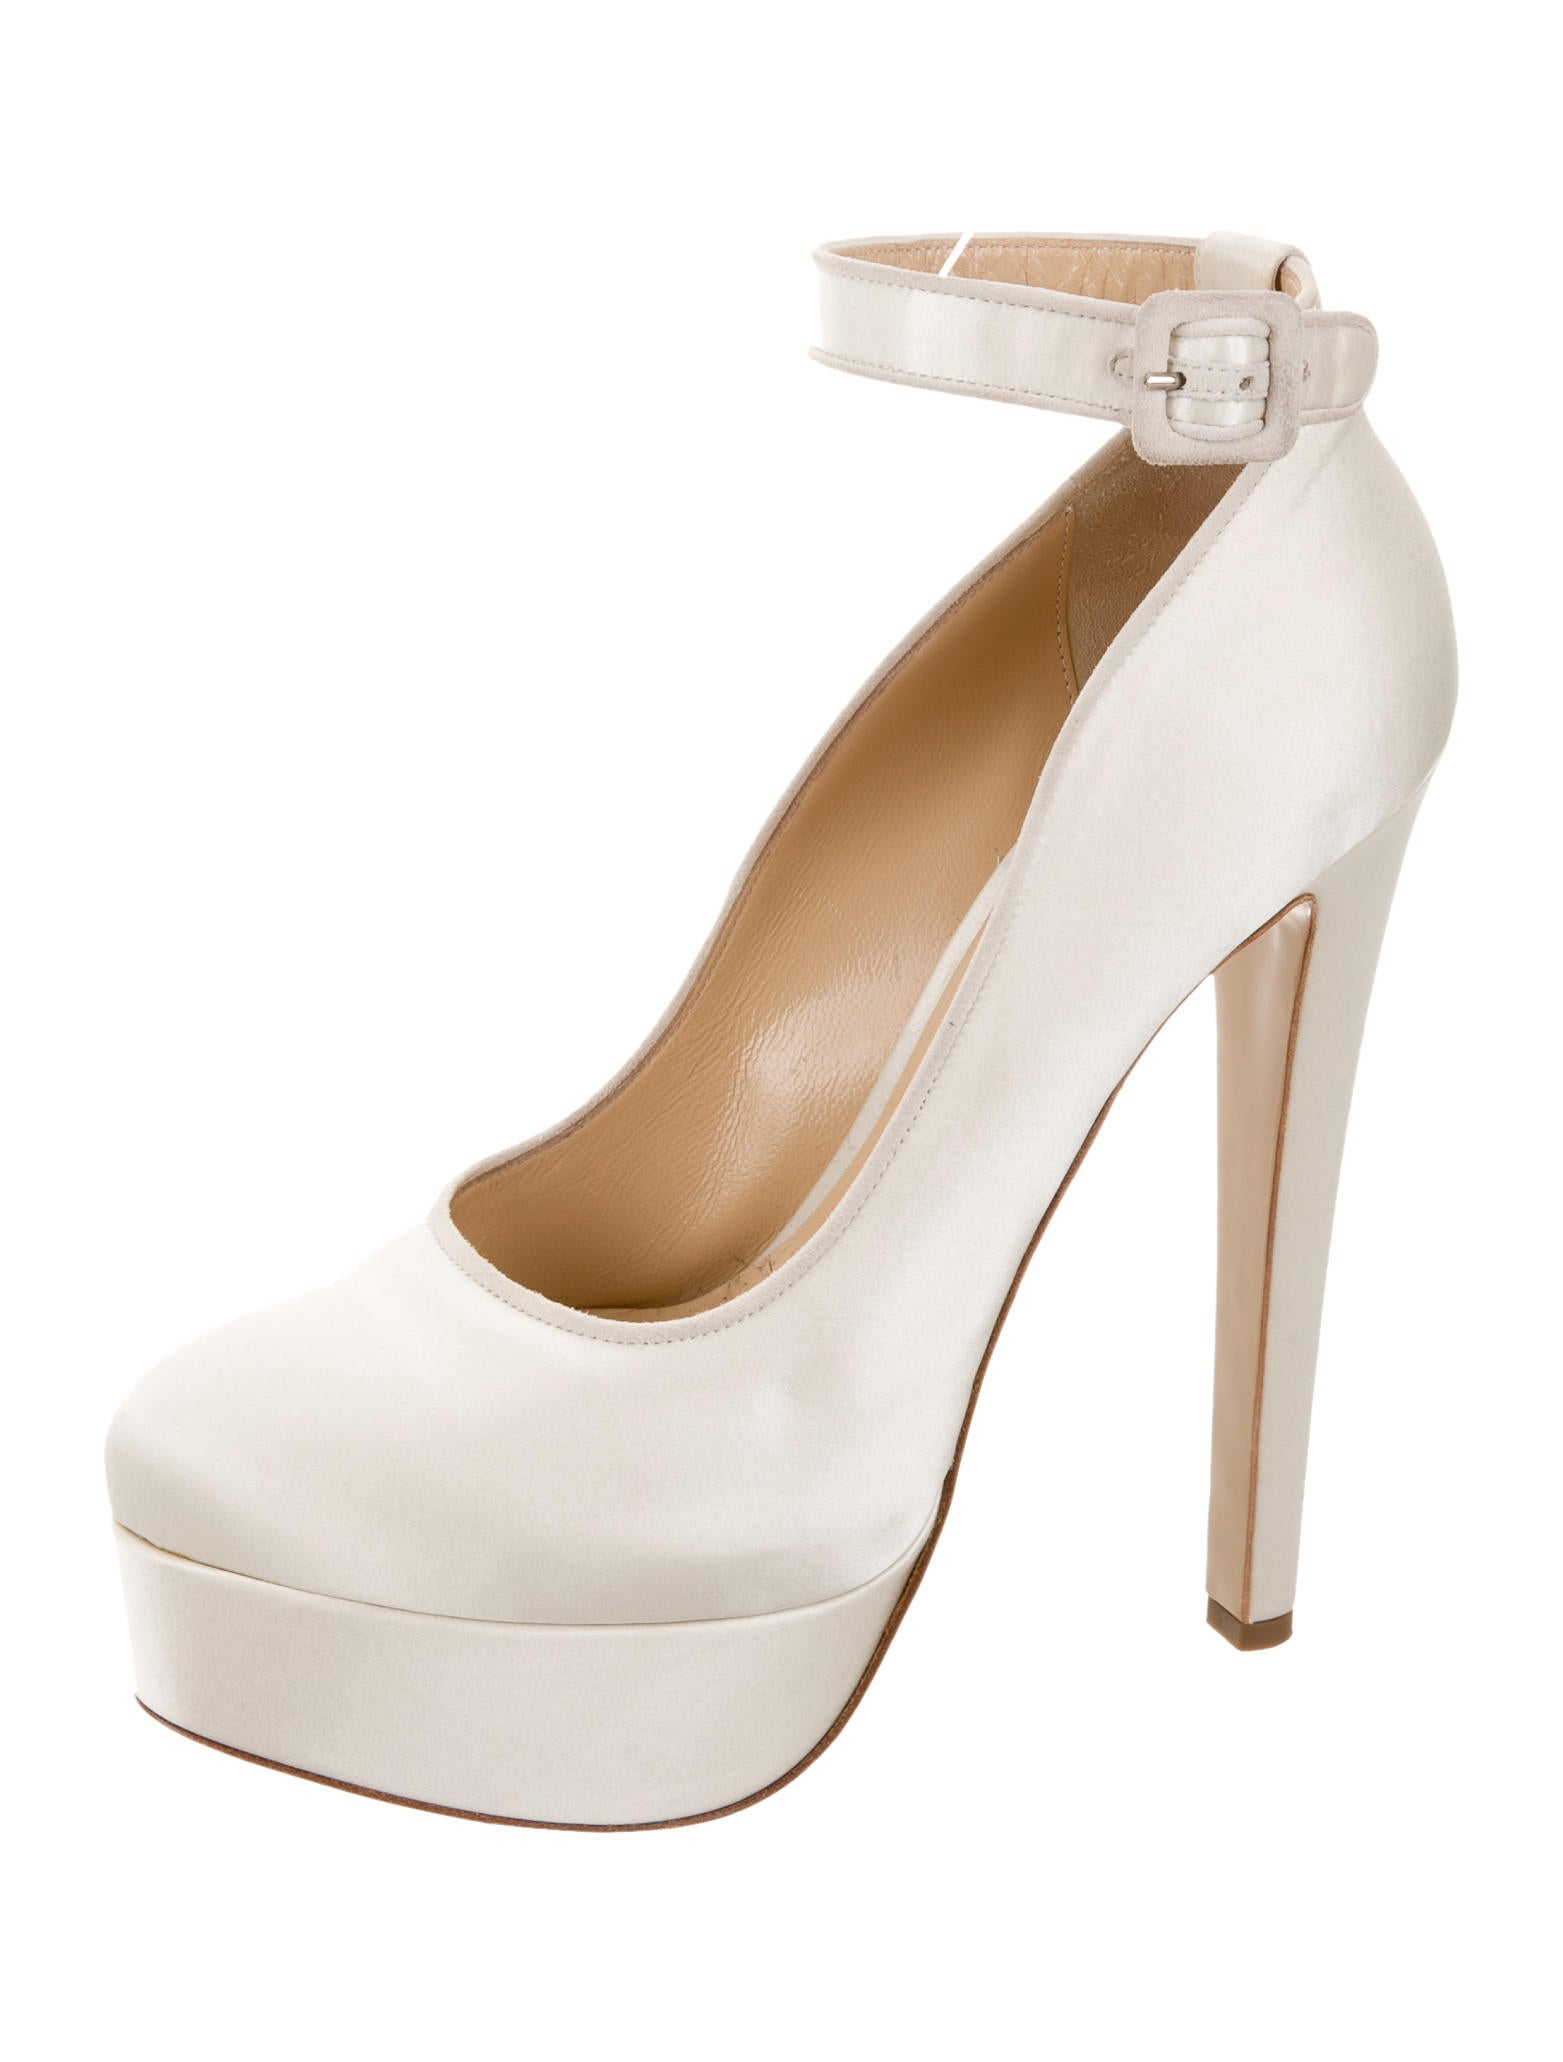 vera wang satin platform pumps shoes ver26166 the